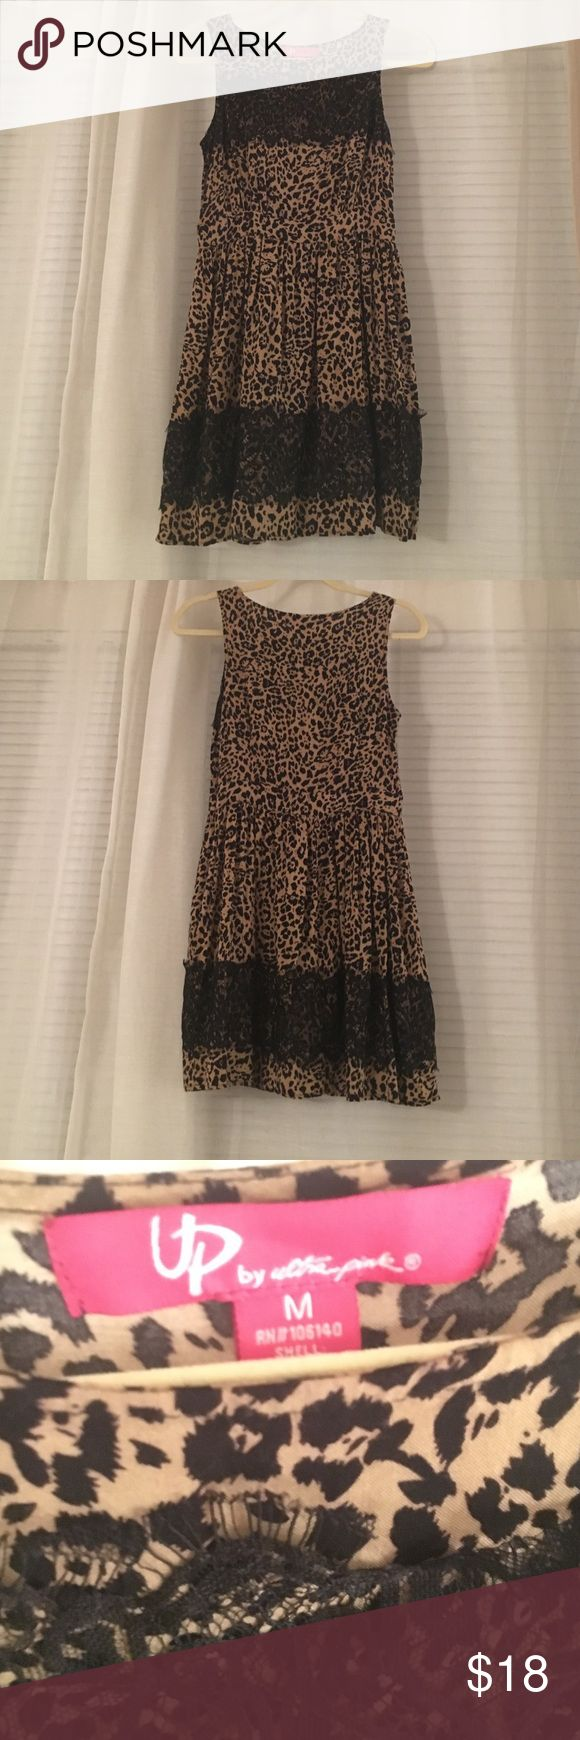 Cheetah Print Dress This cheetah Print dress is detailed with black lace. Very cute and flowy. Dresses